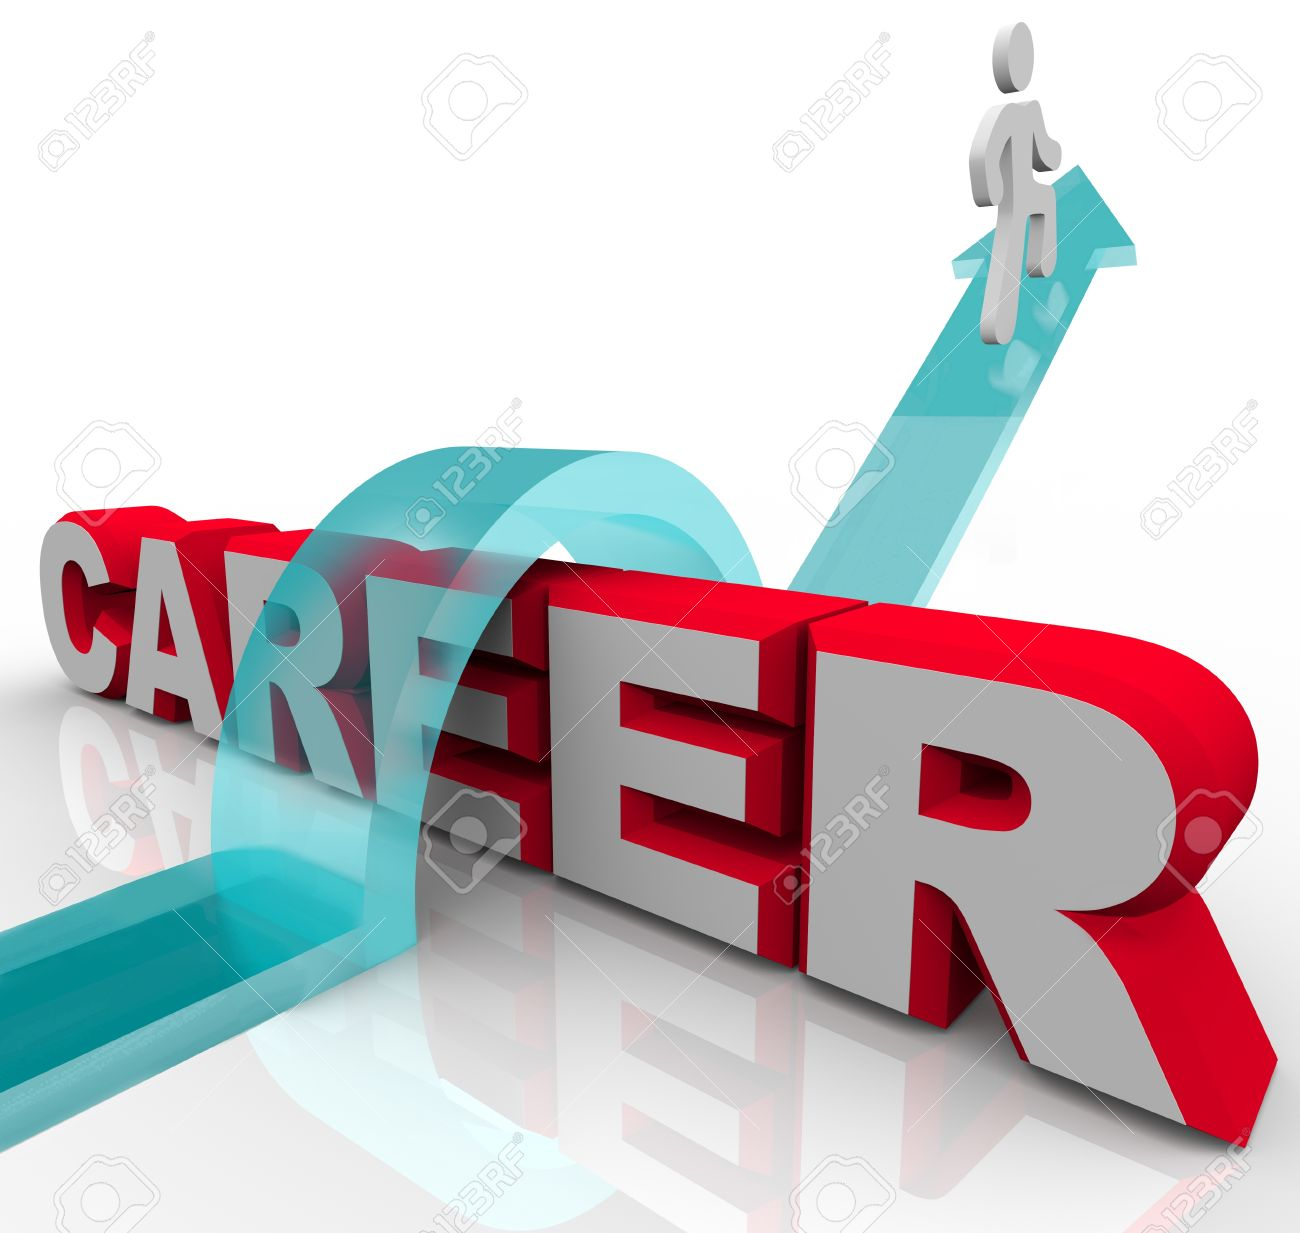 a man jumps the word career on an arrow representing a job or a man jumps the word career on an arrow representing a job or promotion opportunity and